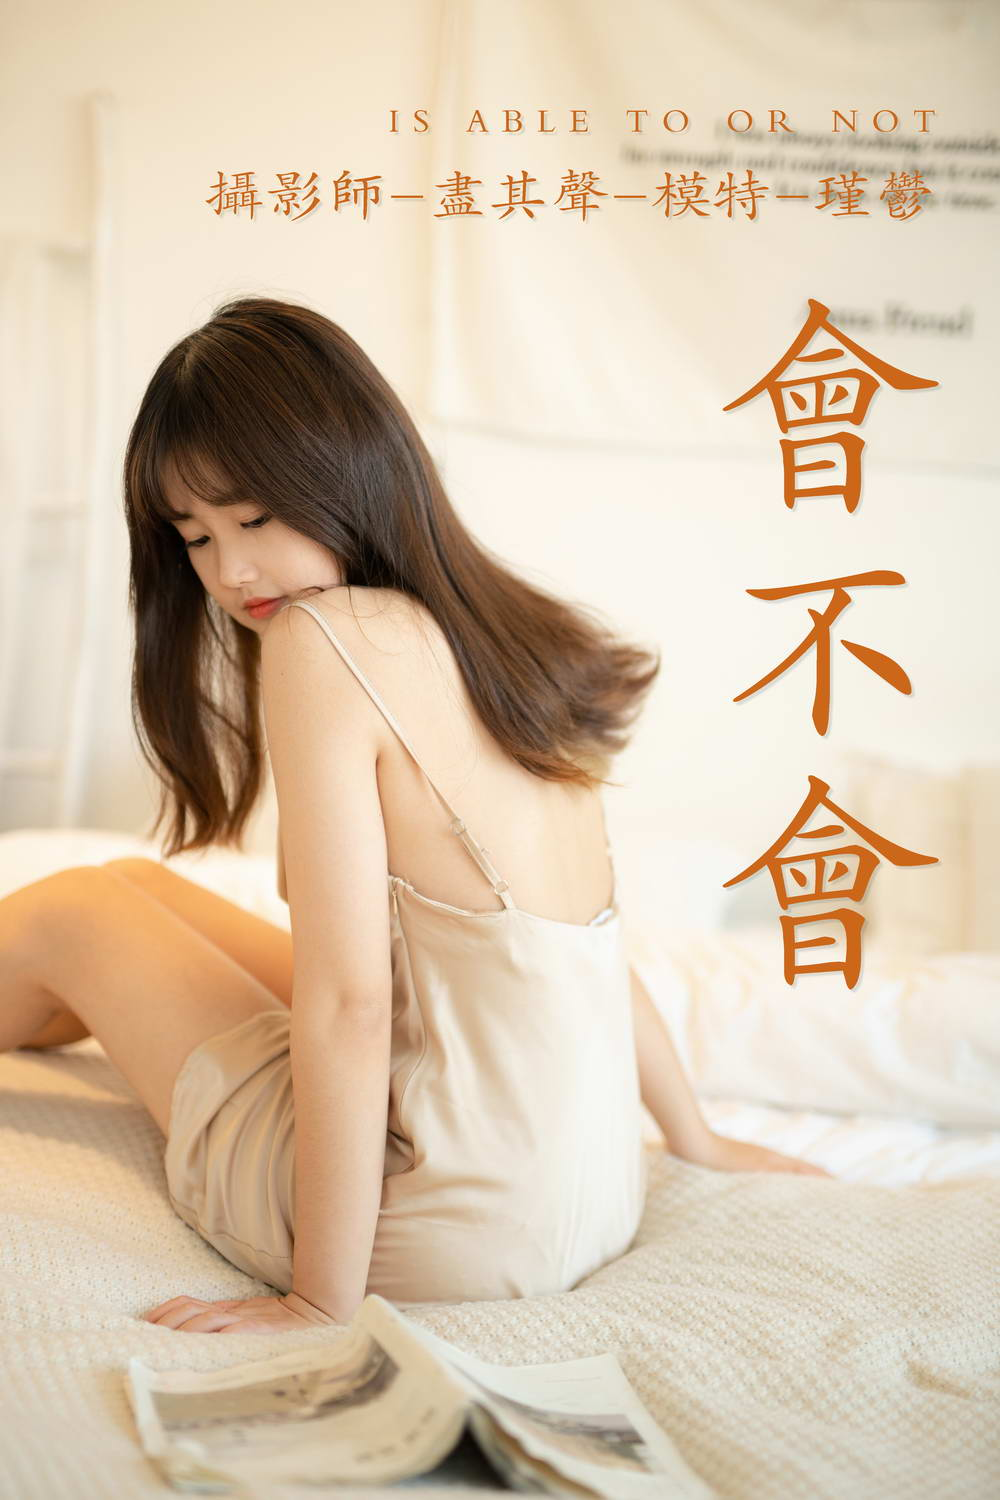 [YITUYU]艺图语 2021.06.11 会不会 瑾郁 [/522MB]